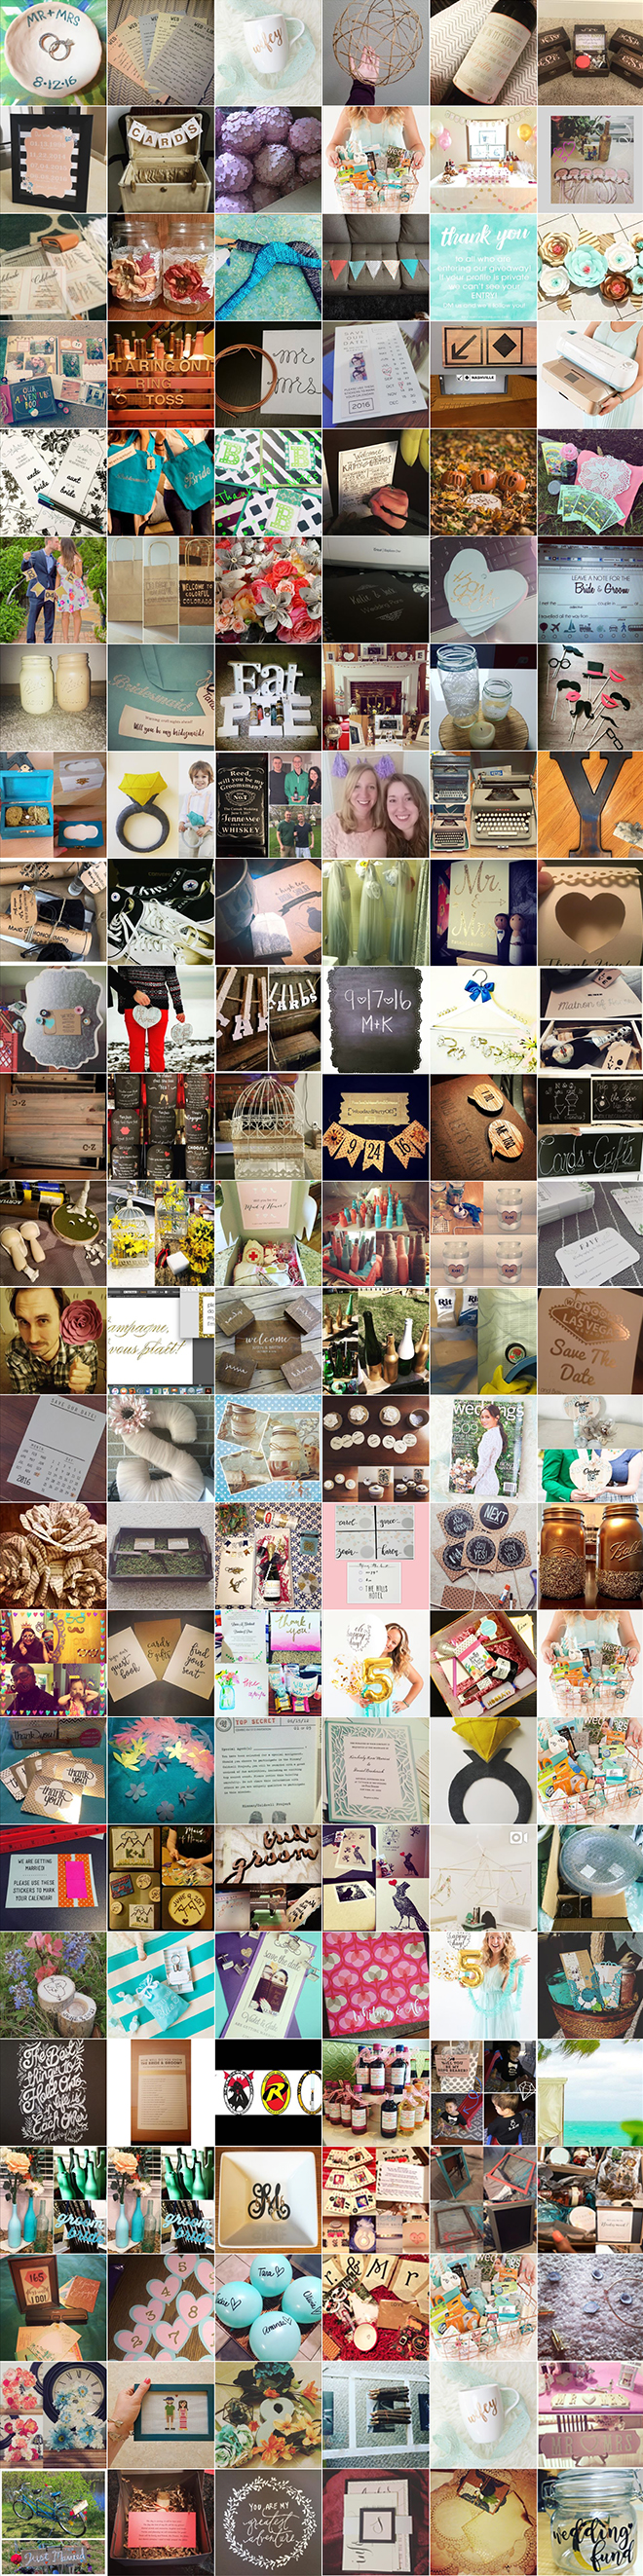 All the amazing DIY bride entries for the #somethingturquoise5 giveaway!